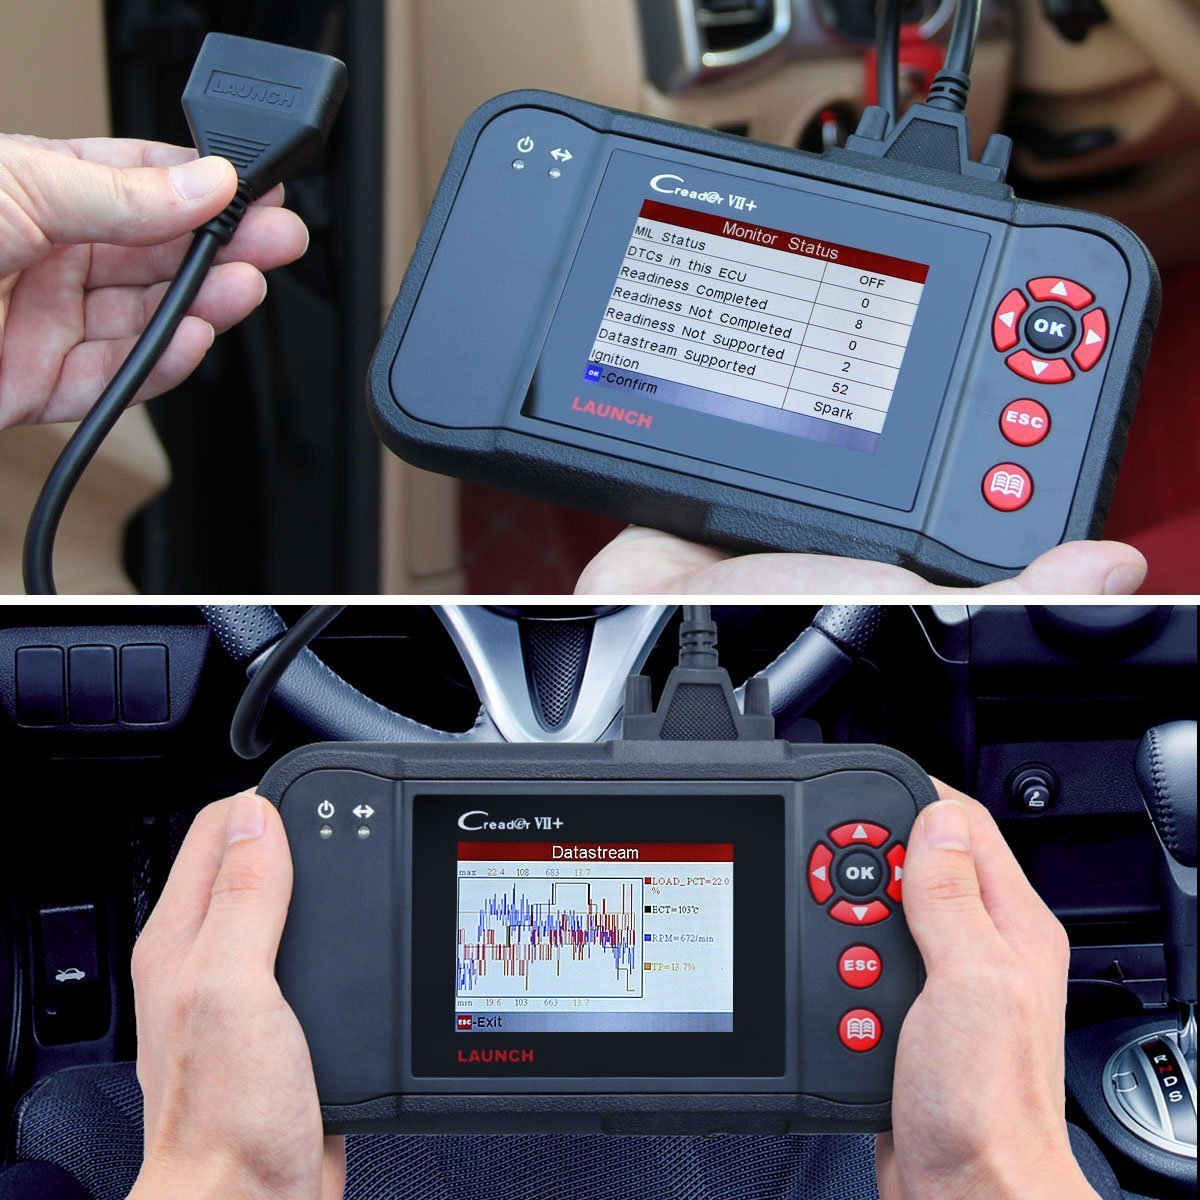 The airbag scanner is handheld and perfectly portable, although its wide profile requires two-hand usage for efficiency